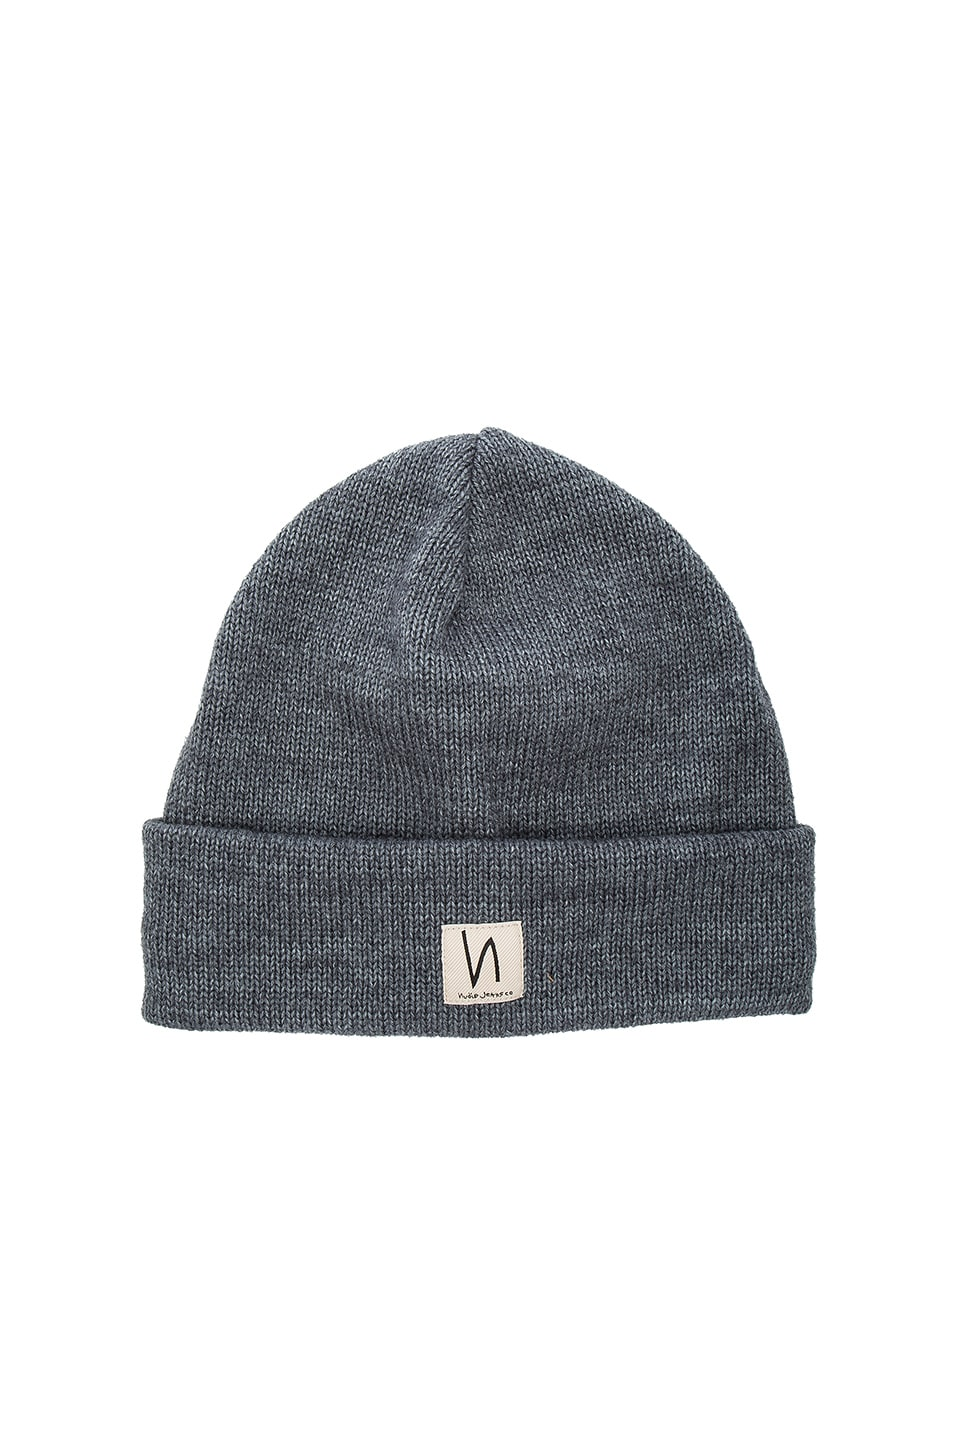 Photo of Salomonsson Beanie by Nudie Jeans men clothes